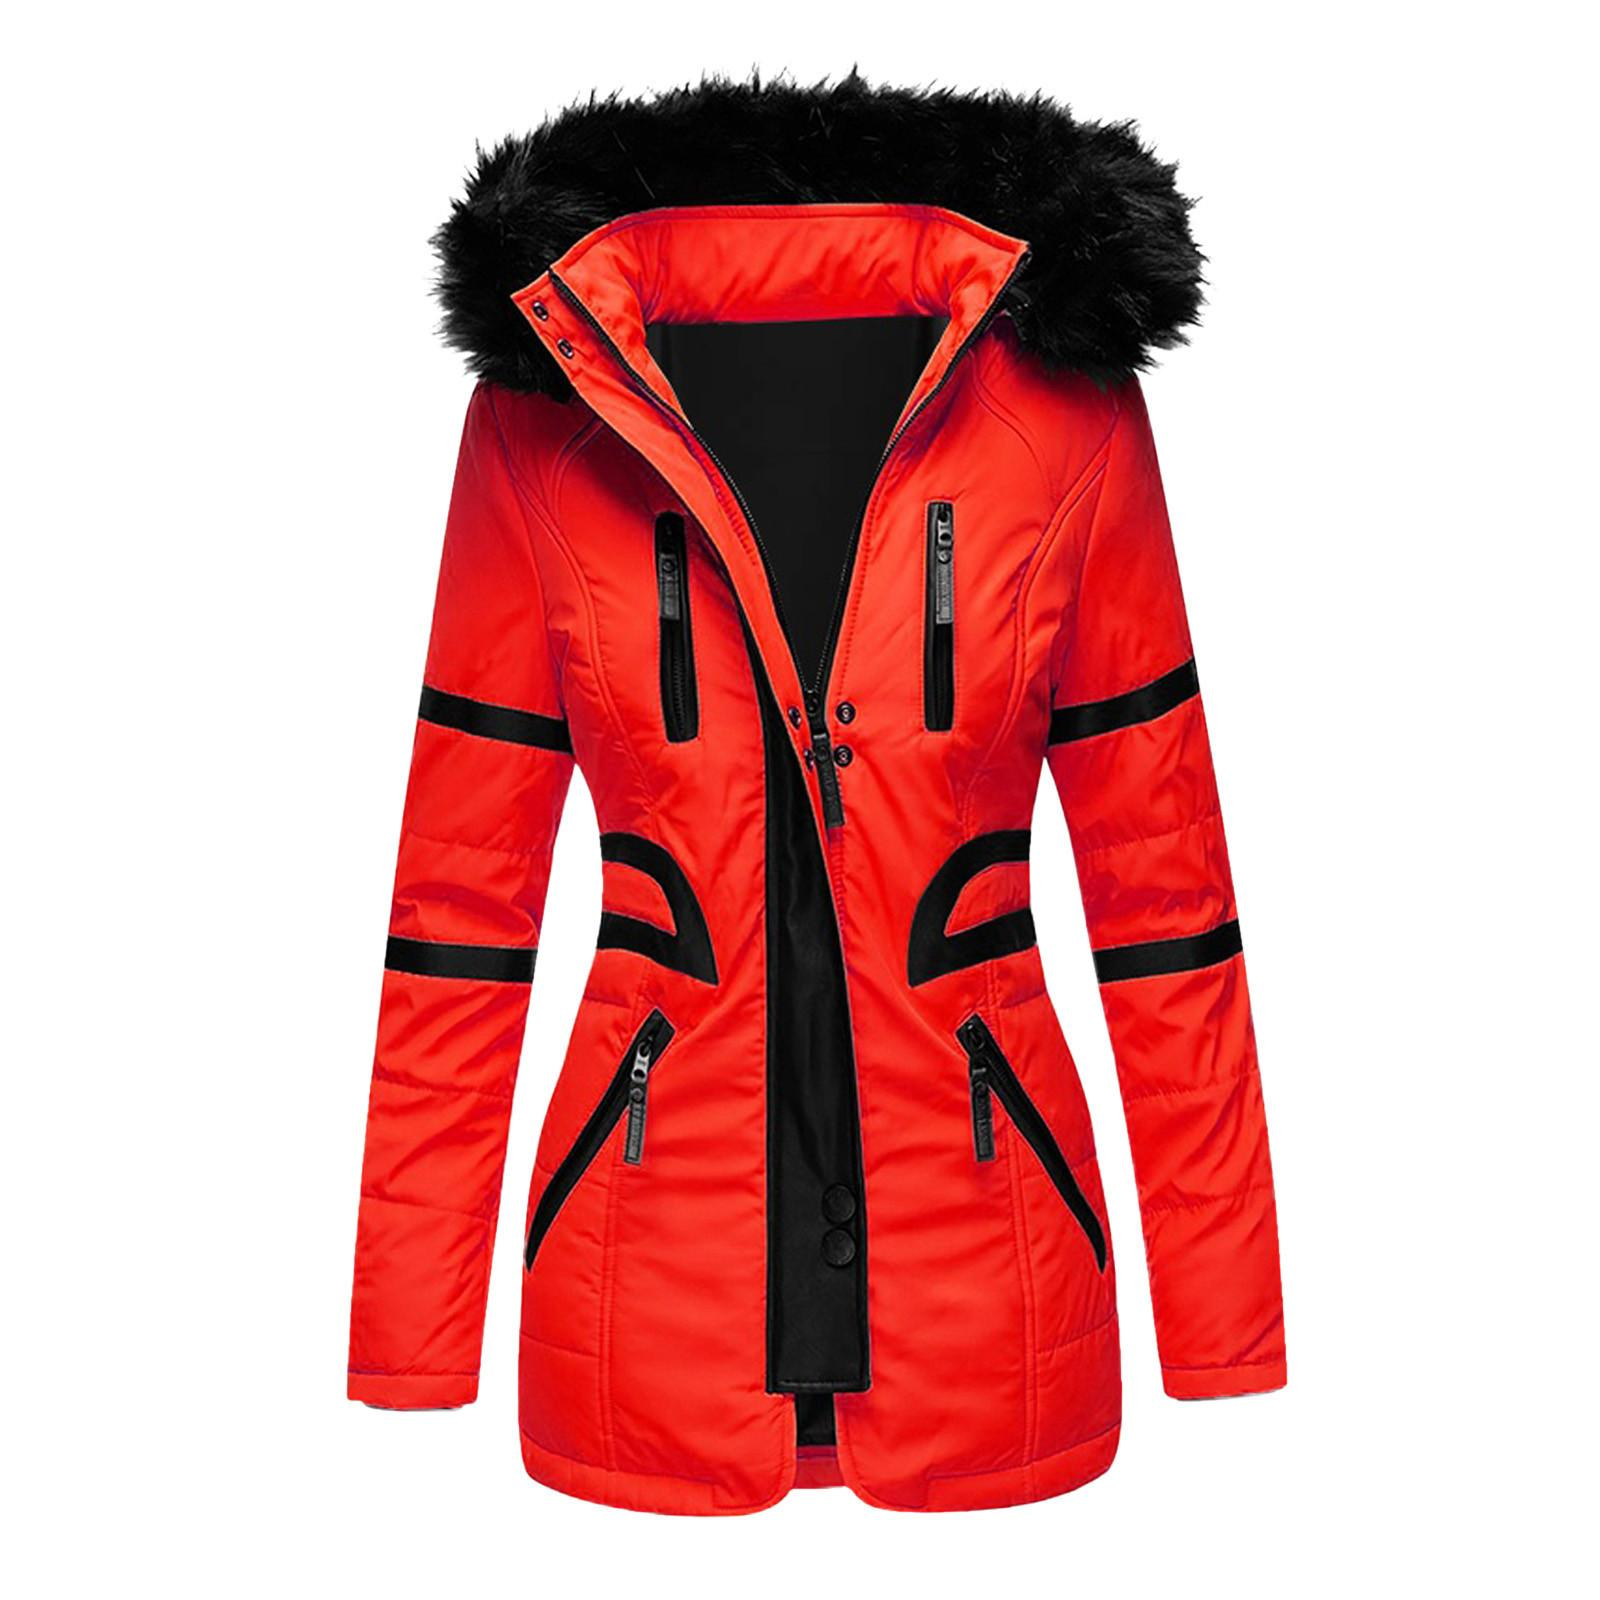 Faux Leather Jacket Women's Warm Coat Outwear Fur' Lined Trench Winter Clothes Hooded Thick Overcoat Cardigan X1016